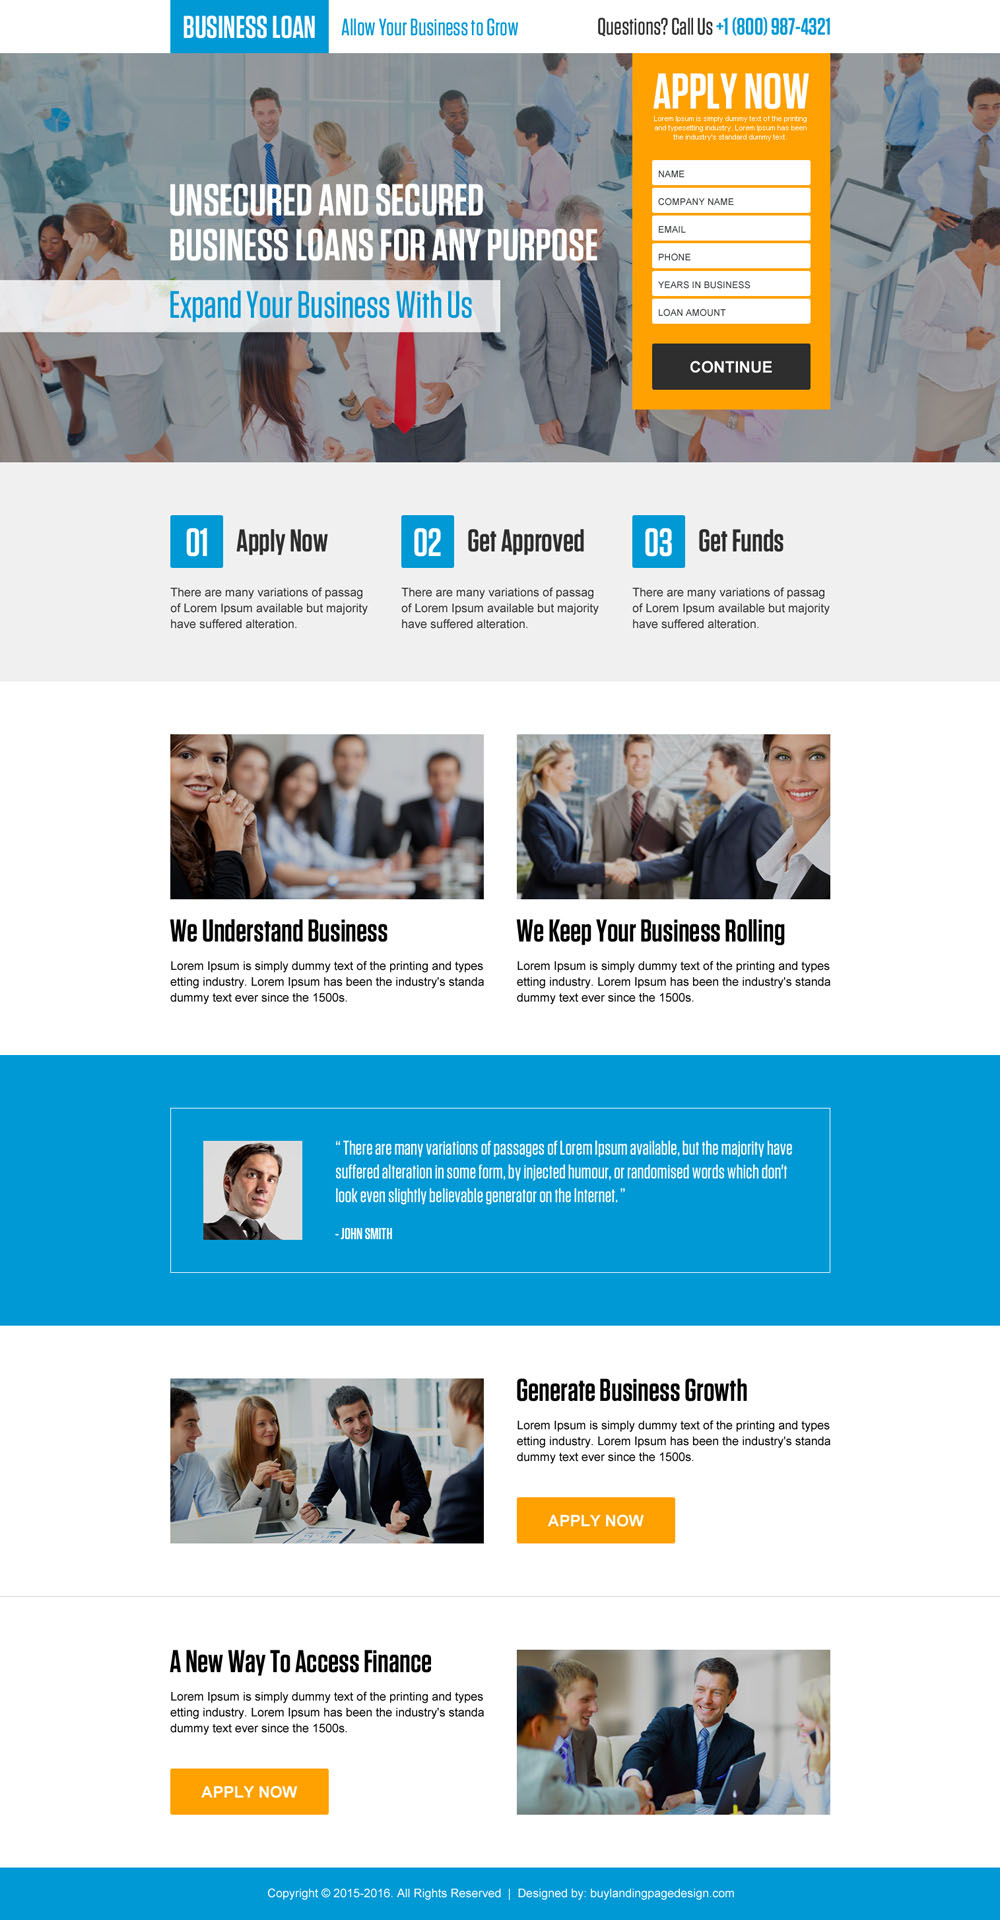 secure-business-loan-lead-capture-conversion-center-landing-page-design-004